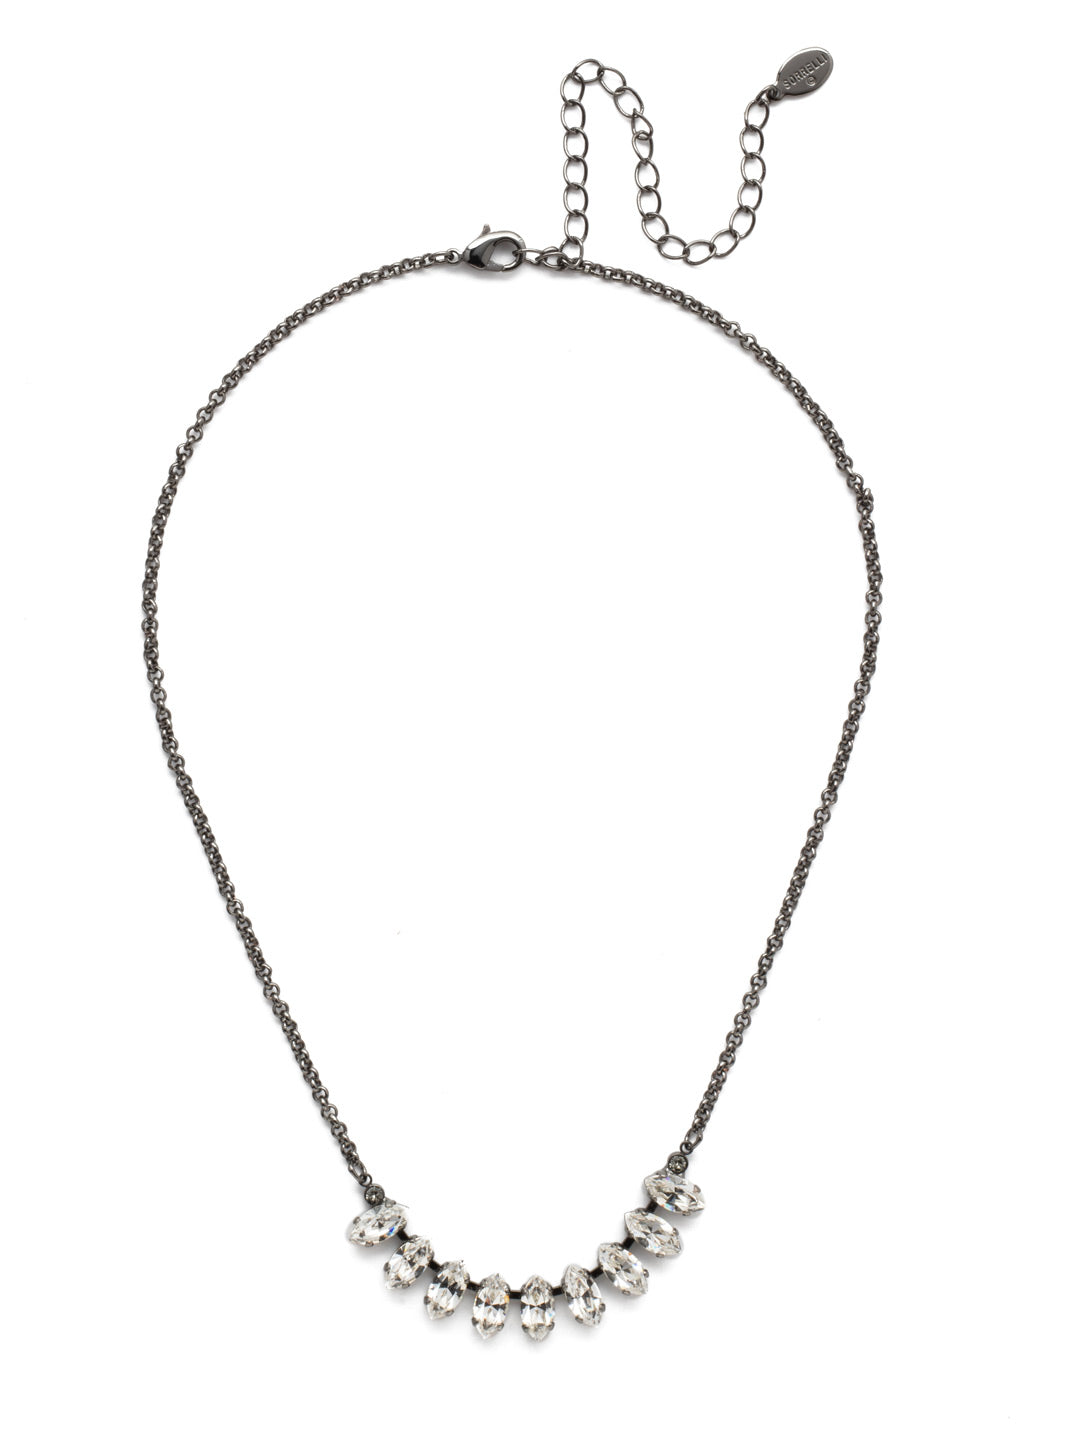 Clarissa Tennis Necklace - NEP4GMMMO